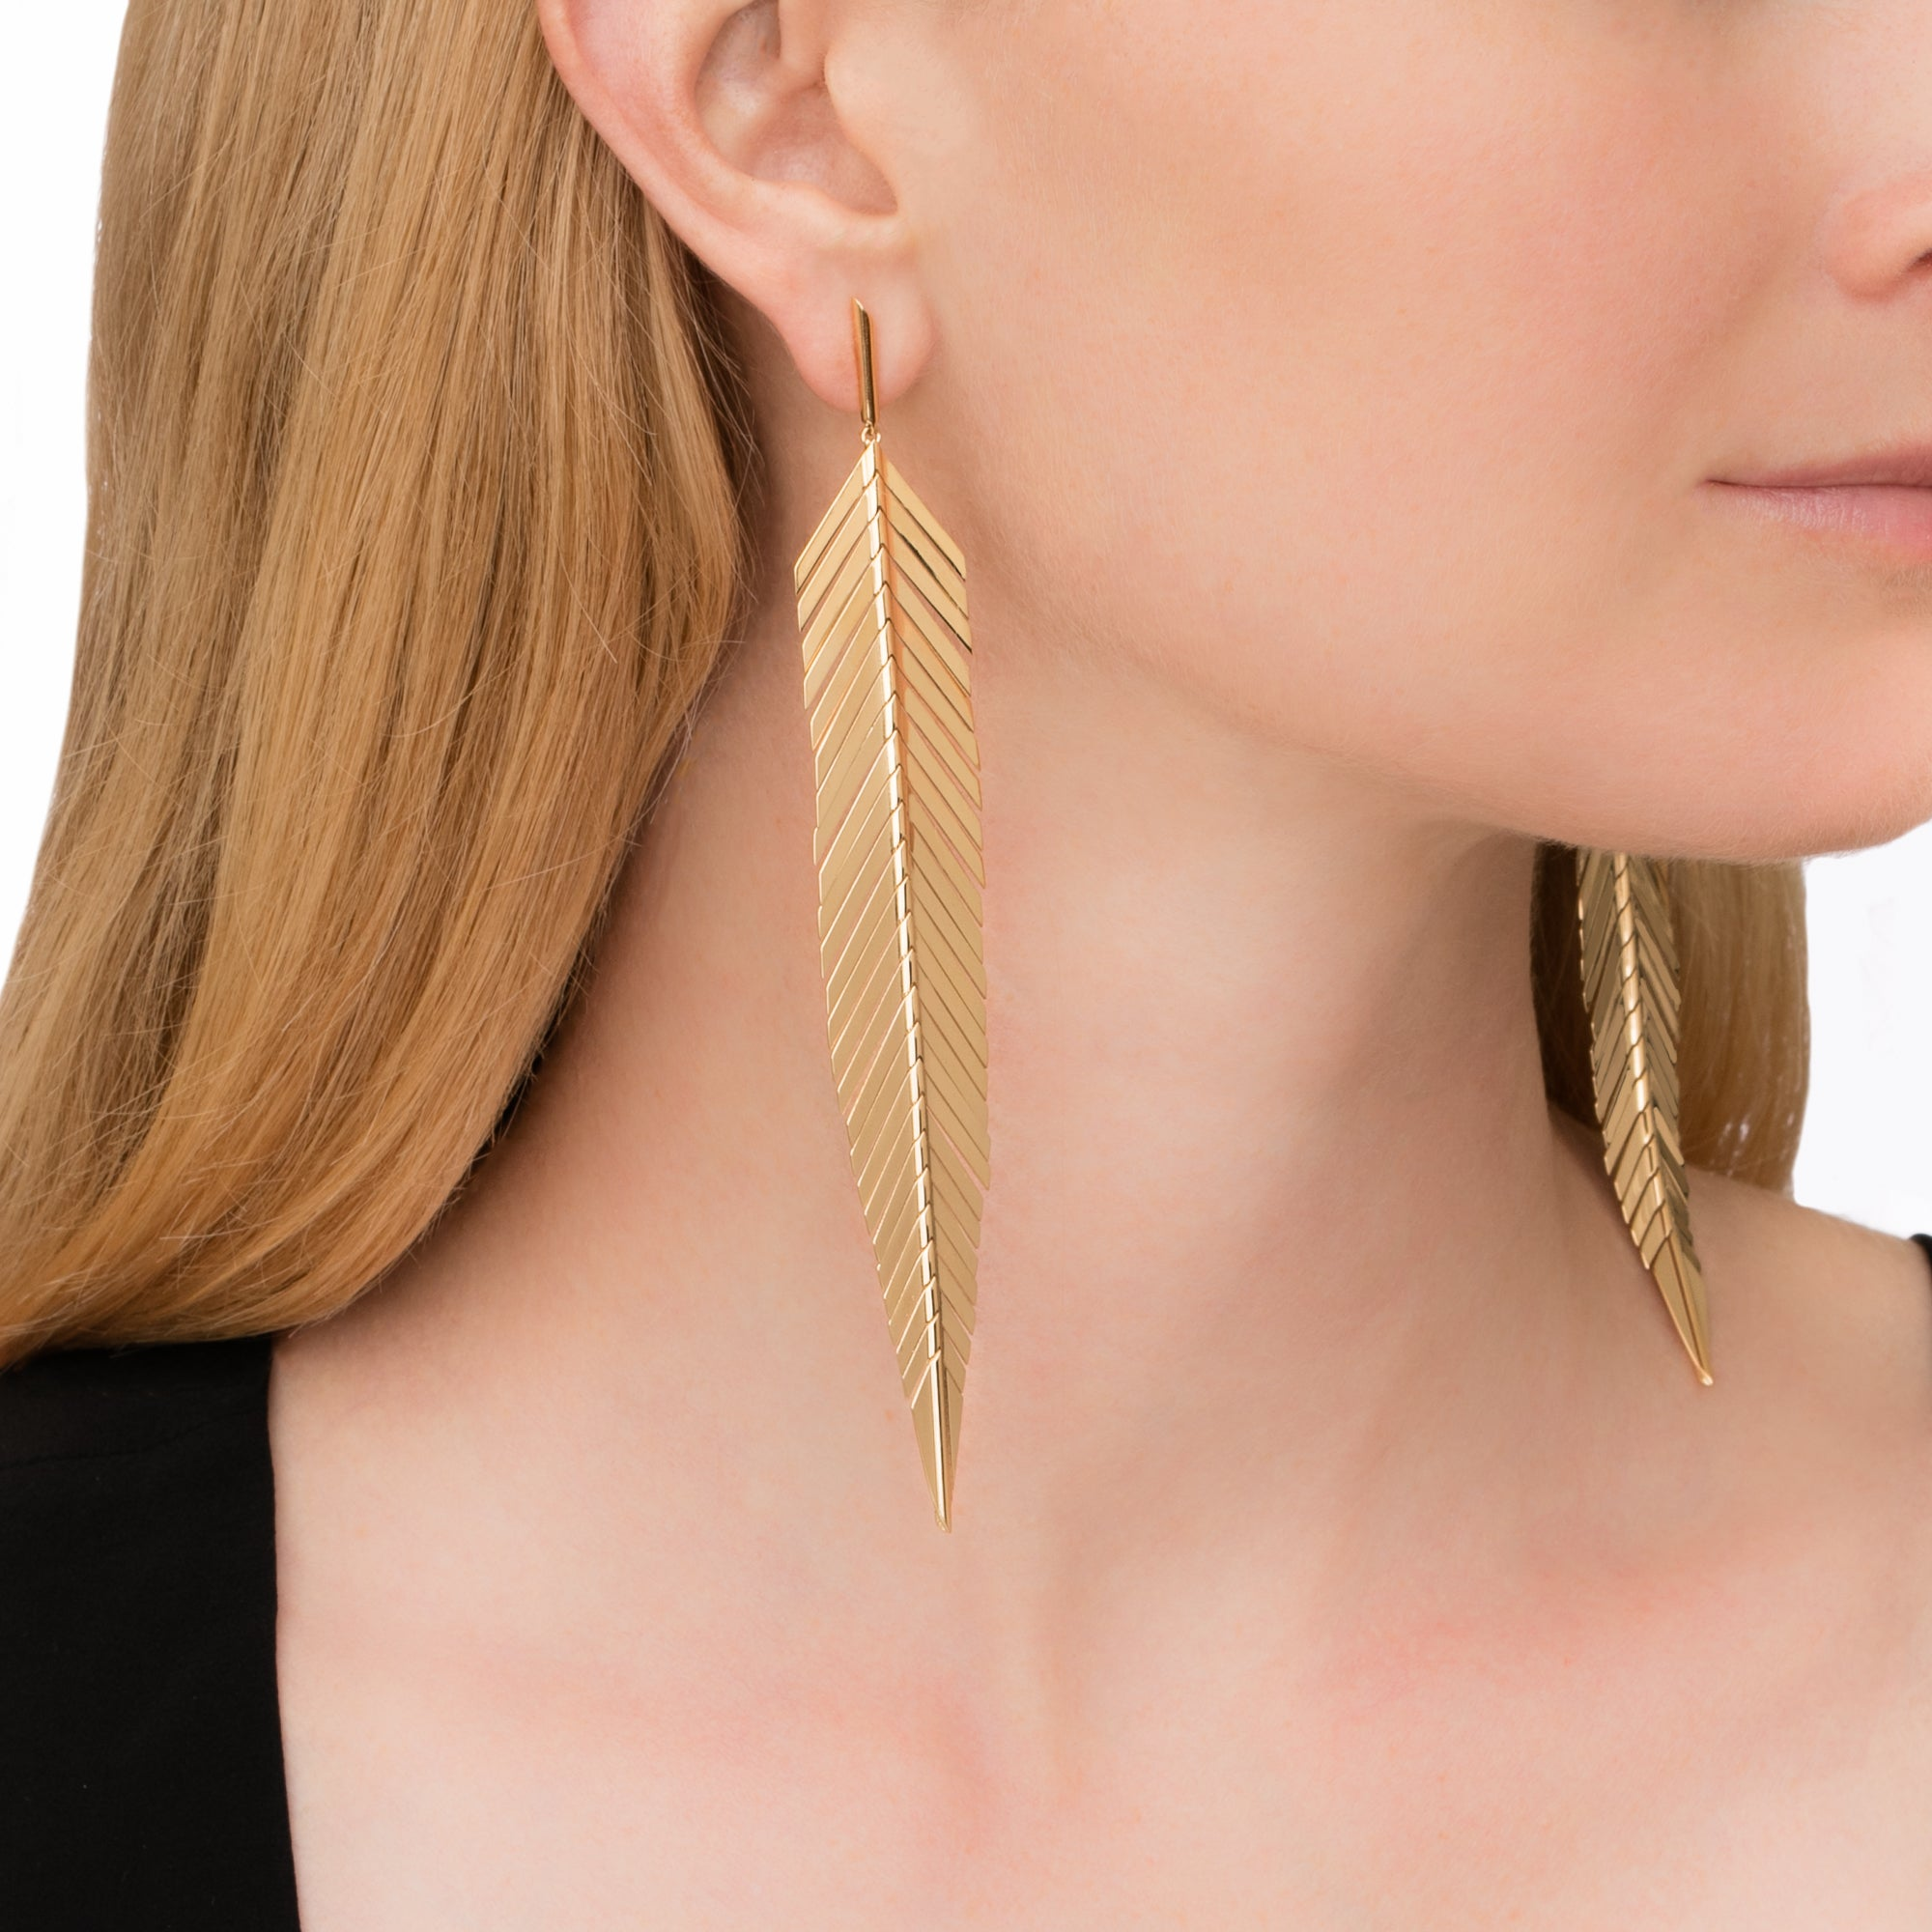 Large Feather Earrings - Cadar - Earrings | Broken English Jewelry